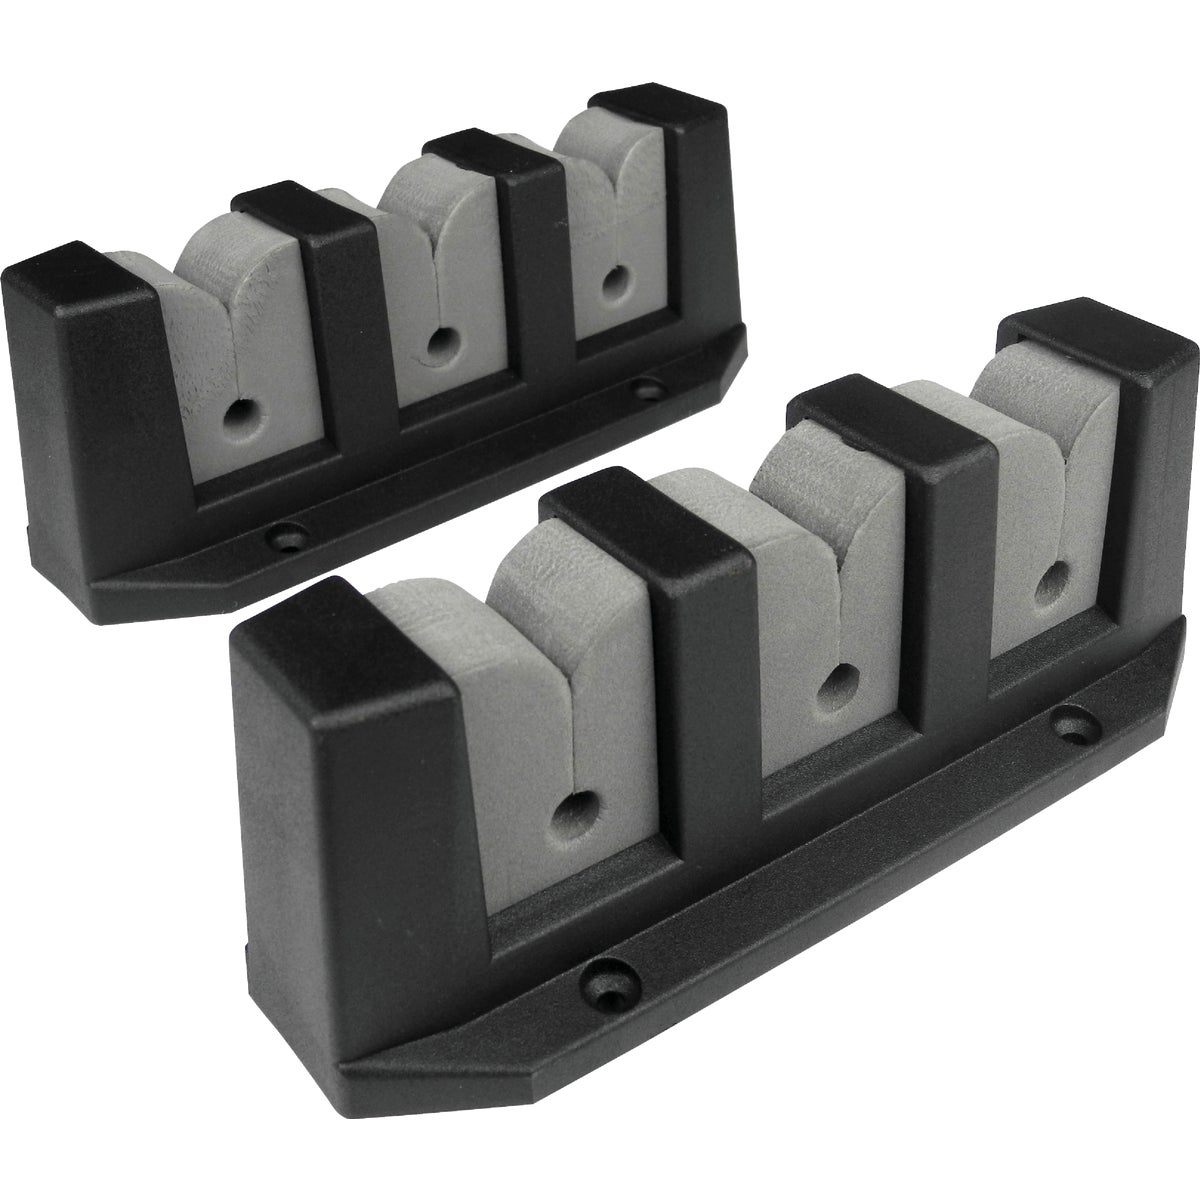 3 ROD STORAGE HOLDER